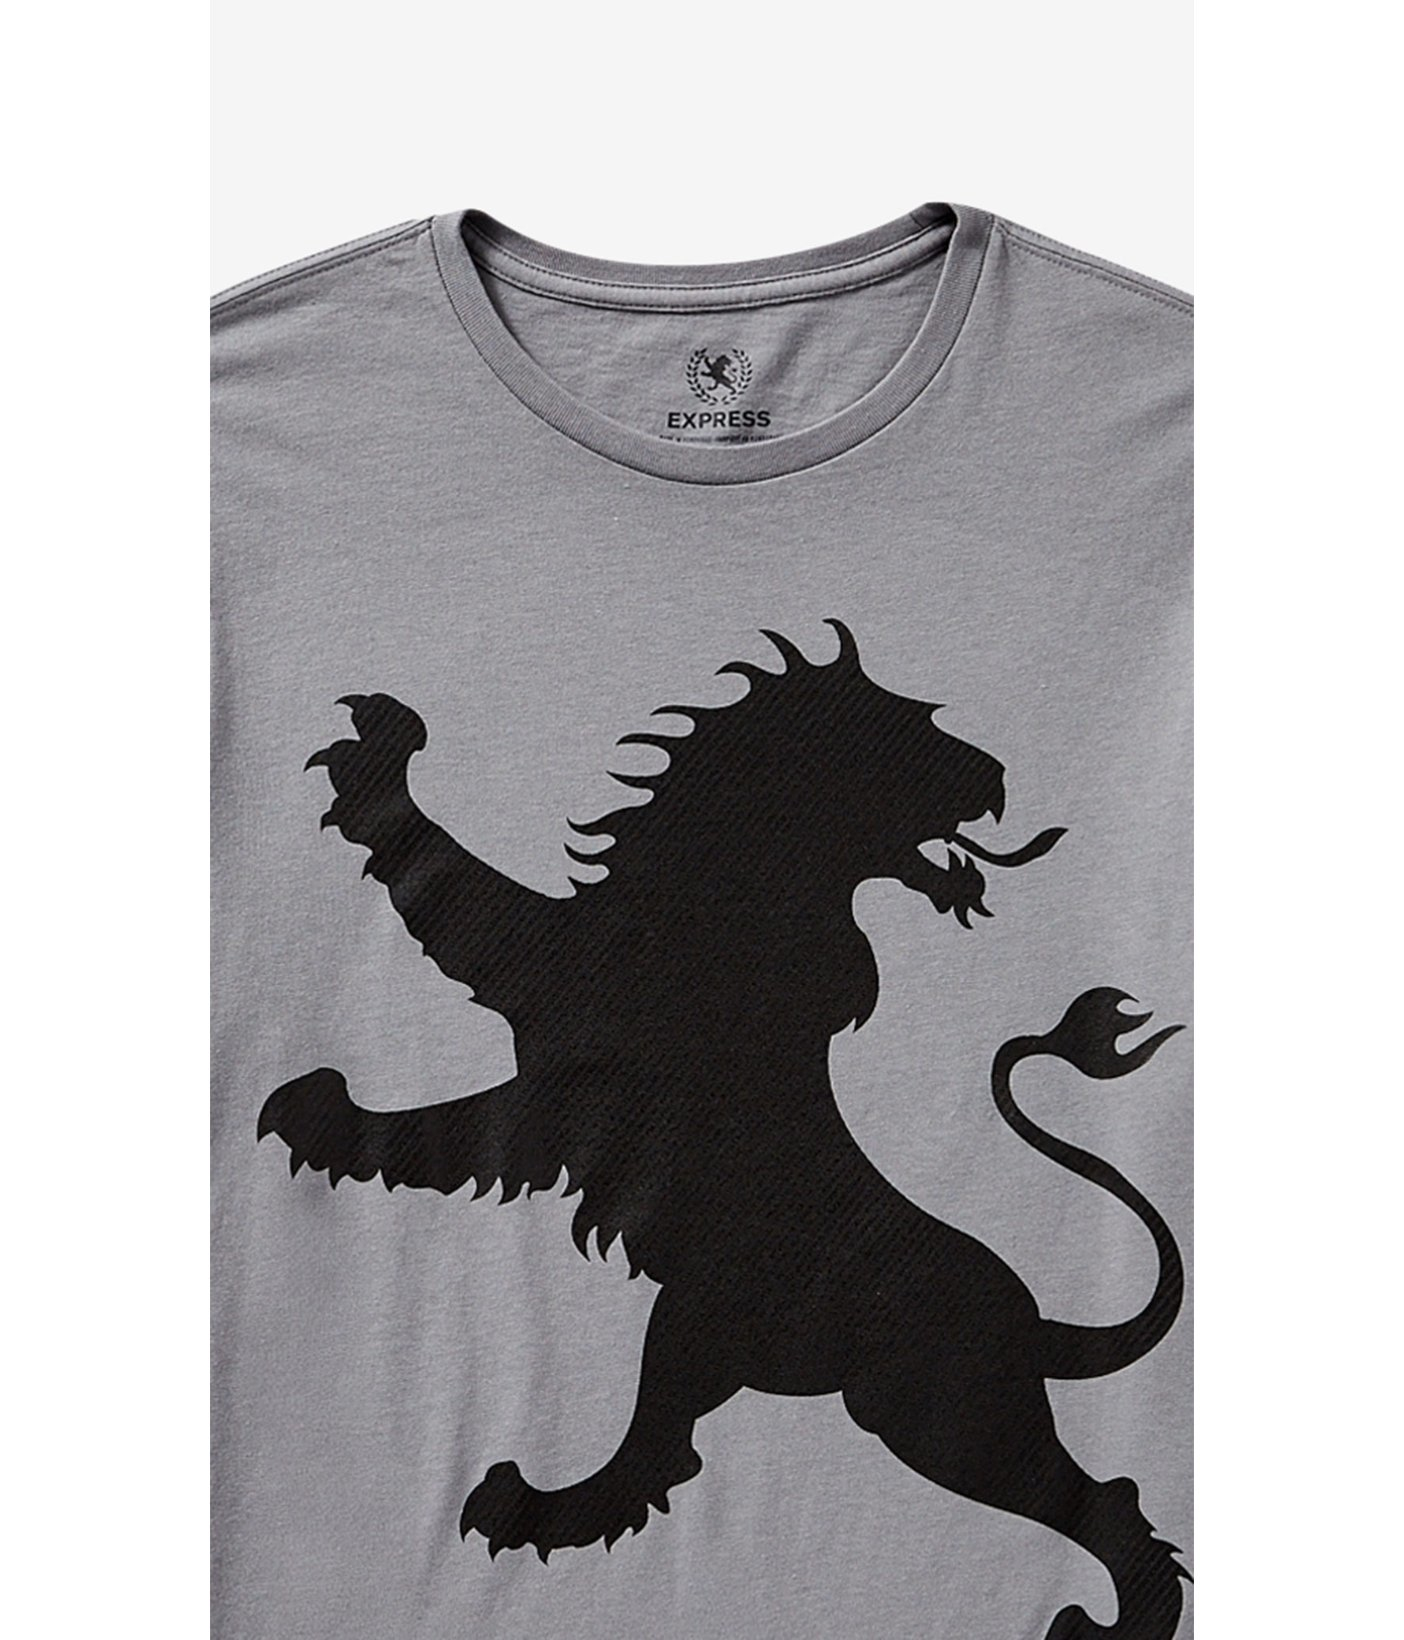 44591292ce770 Express Gray Exploded Lion Graphic Tee in Gray for Men - Lyst